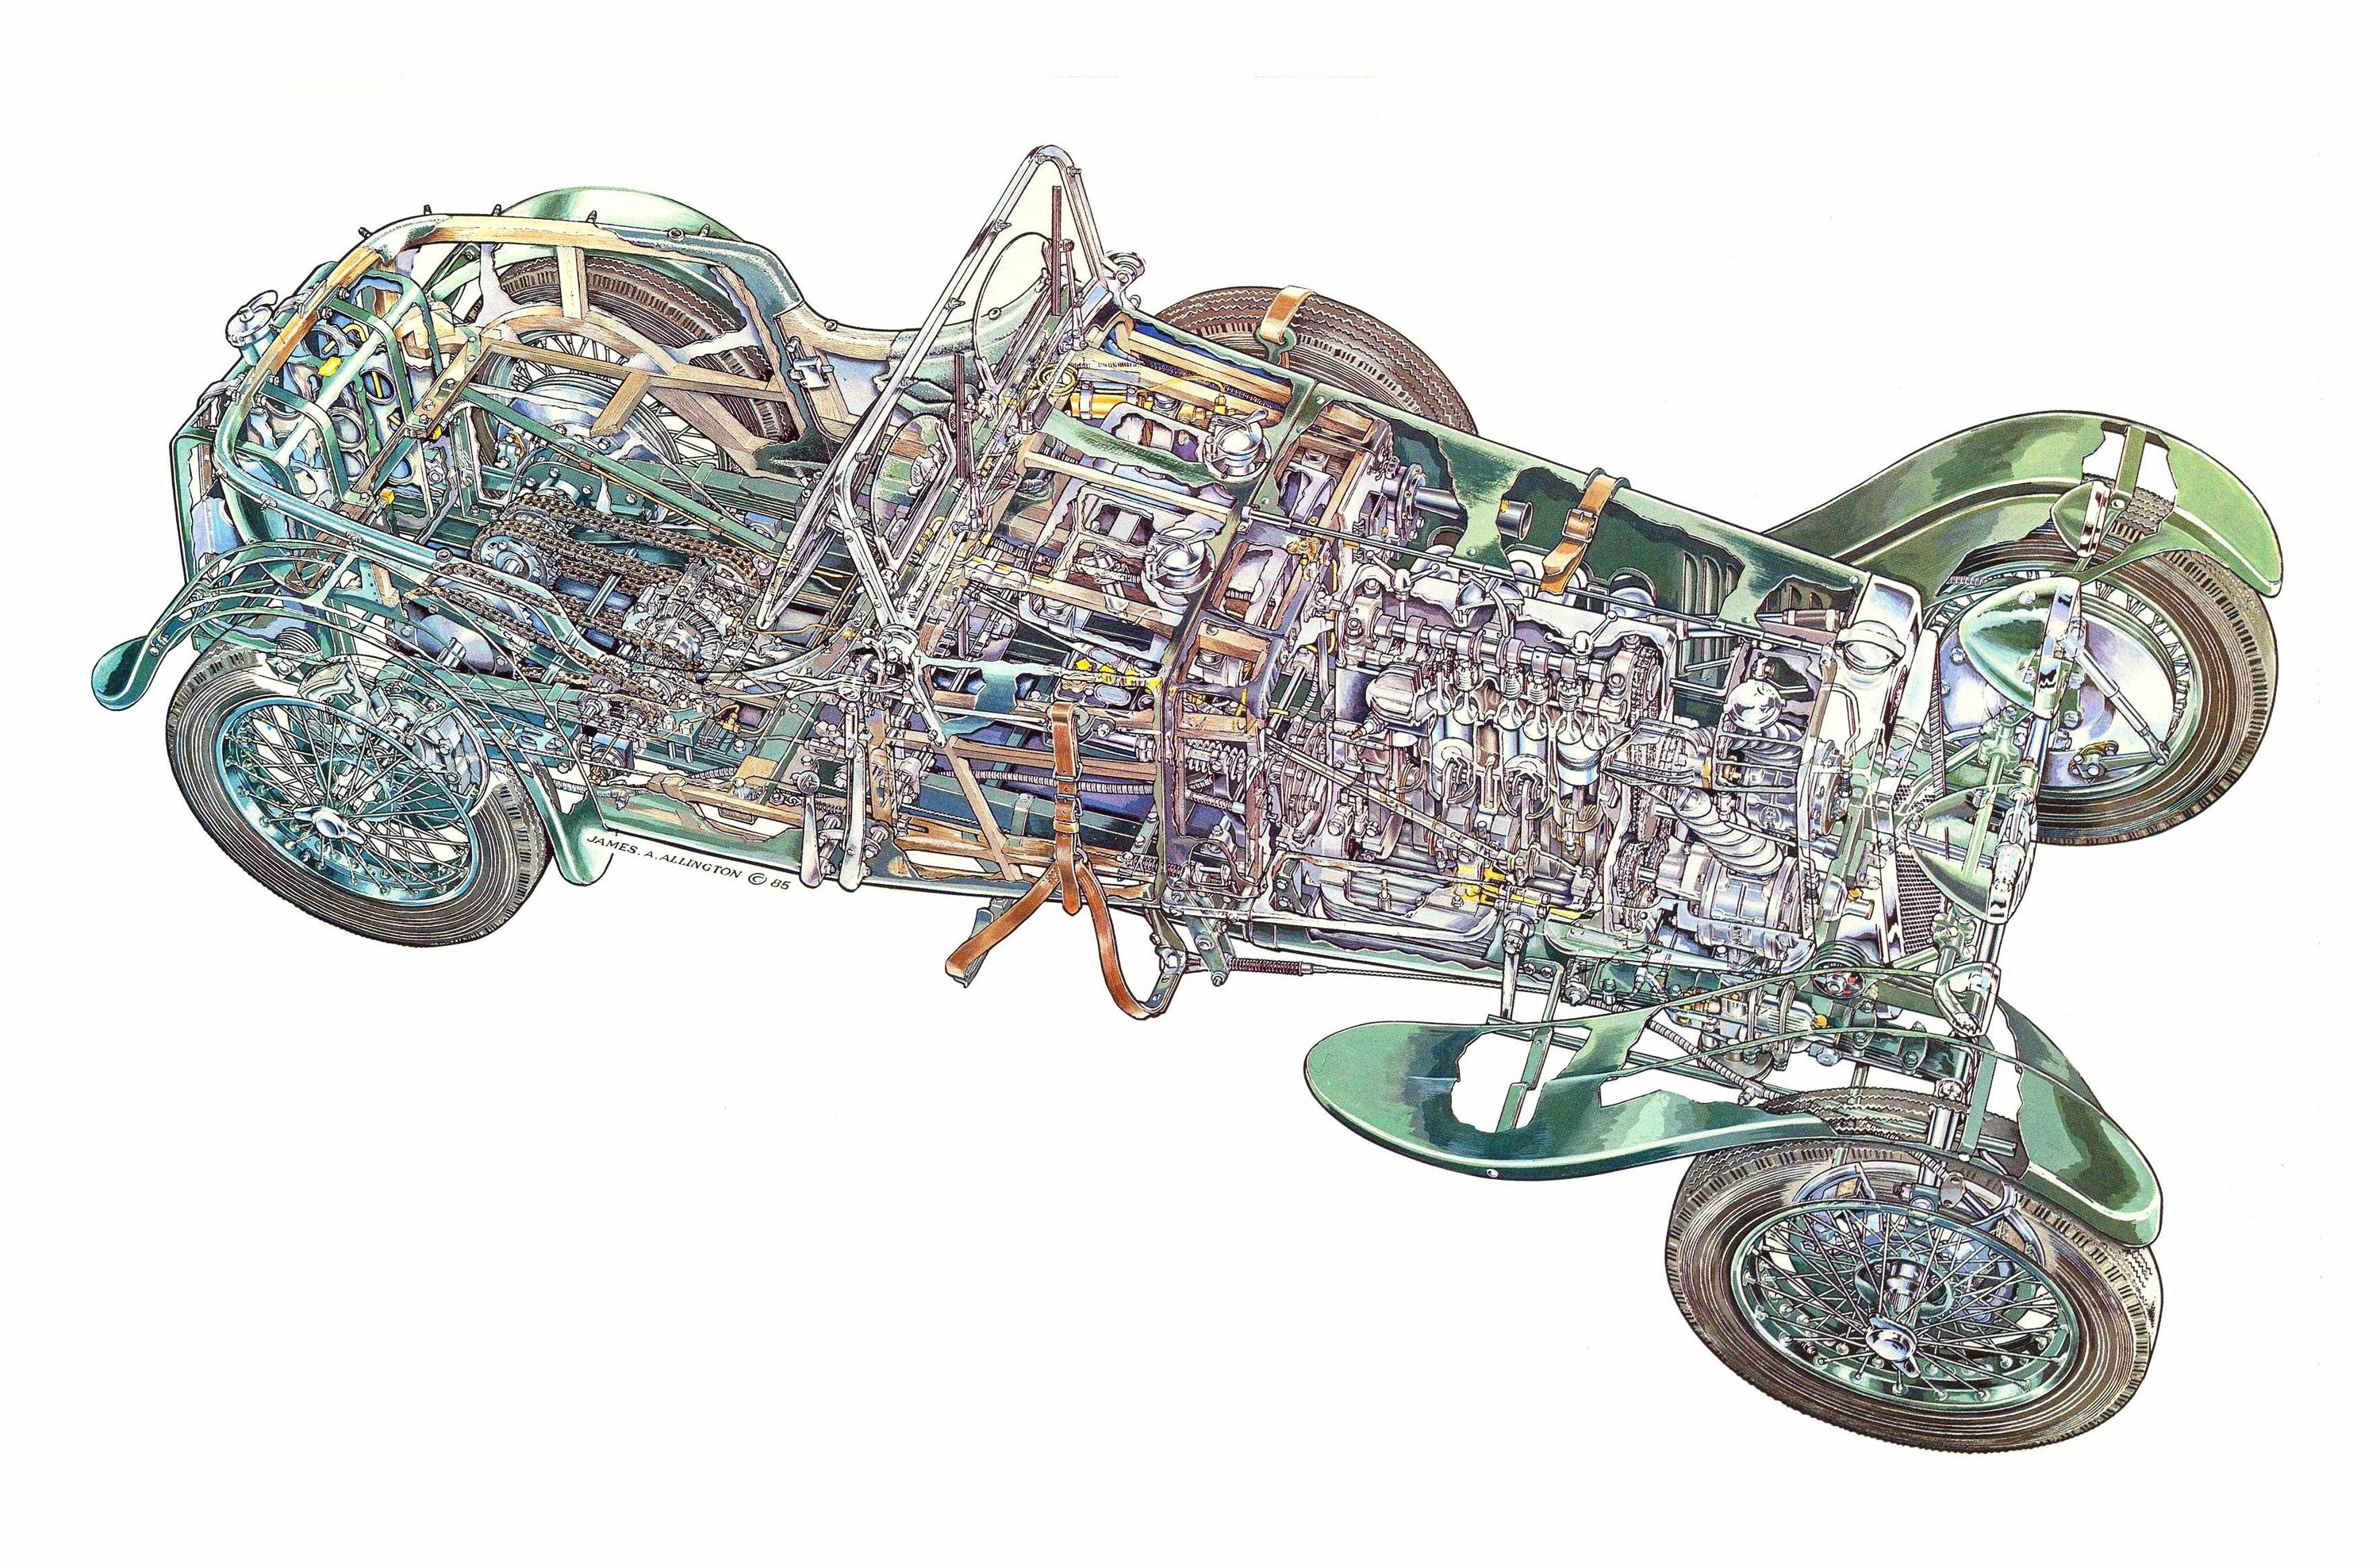 Frazer Nash Shelsley cutaway drawing